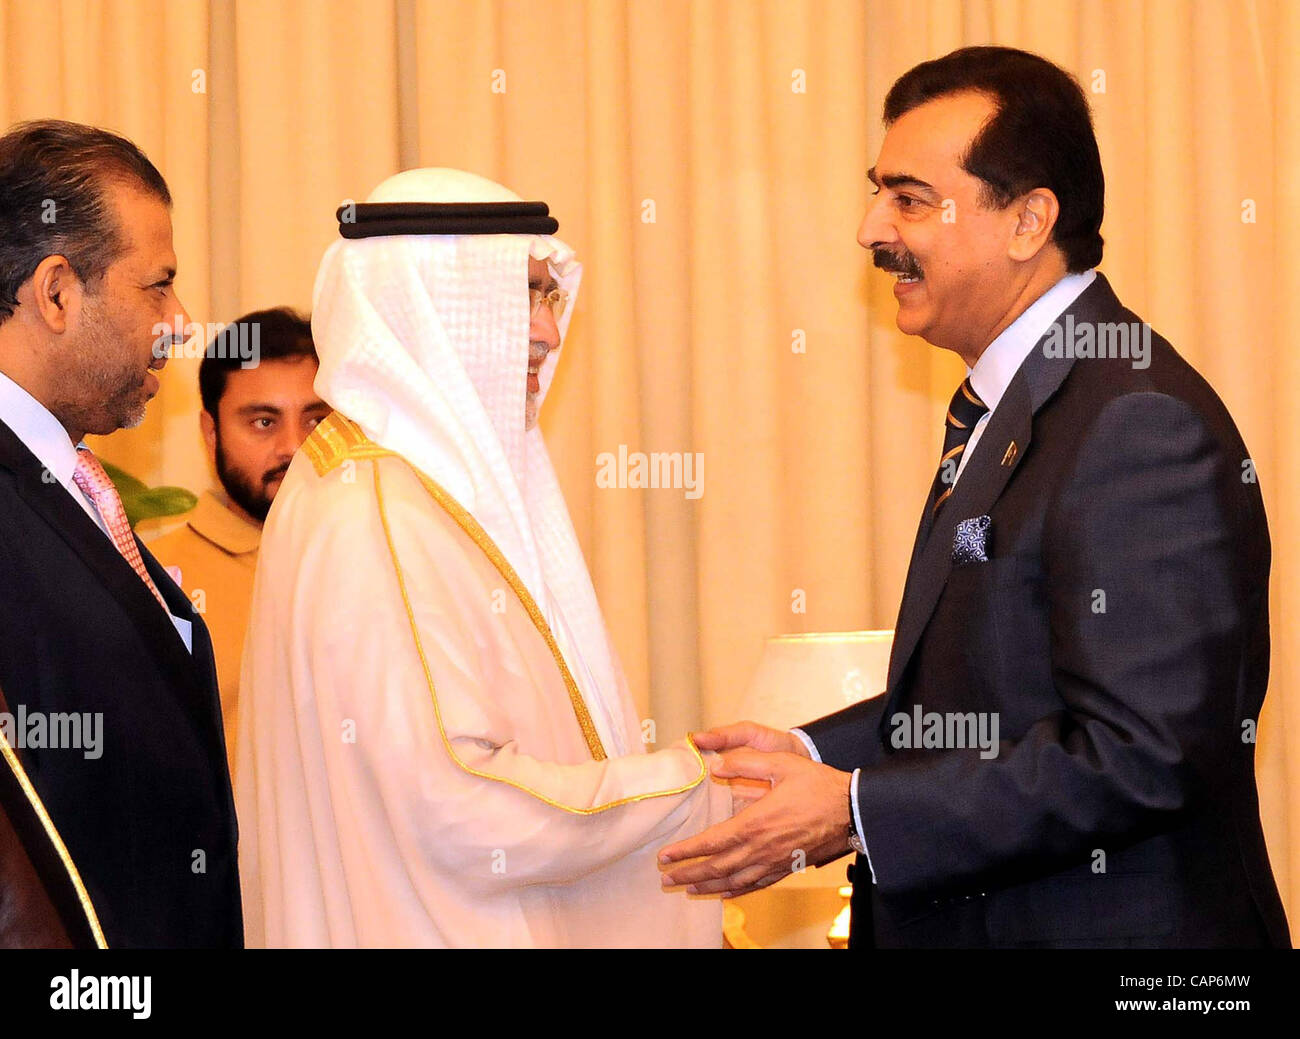 Prime Minister Syed Yousuf Raza Gilani Shakes Hand With Saudi Arabia Information And Culture Abdul Aziz Bin Mohayyuddin Khoja During Meeting At